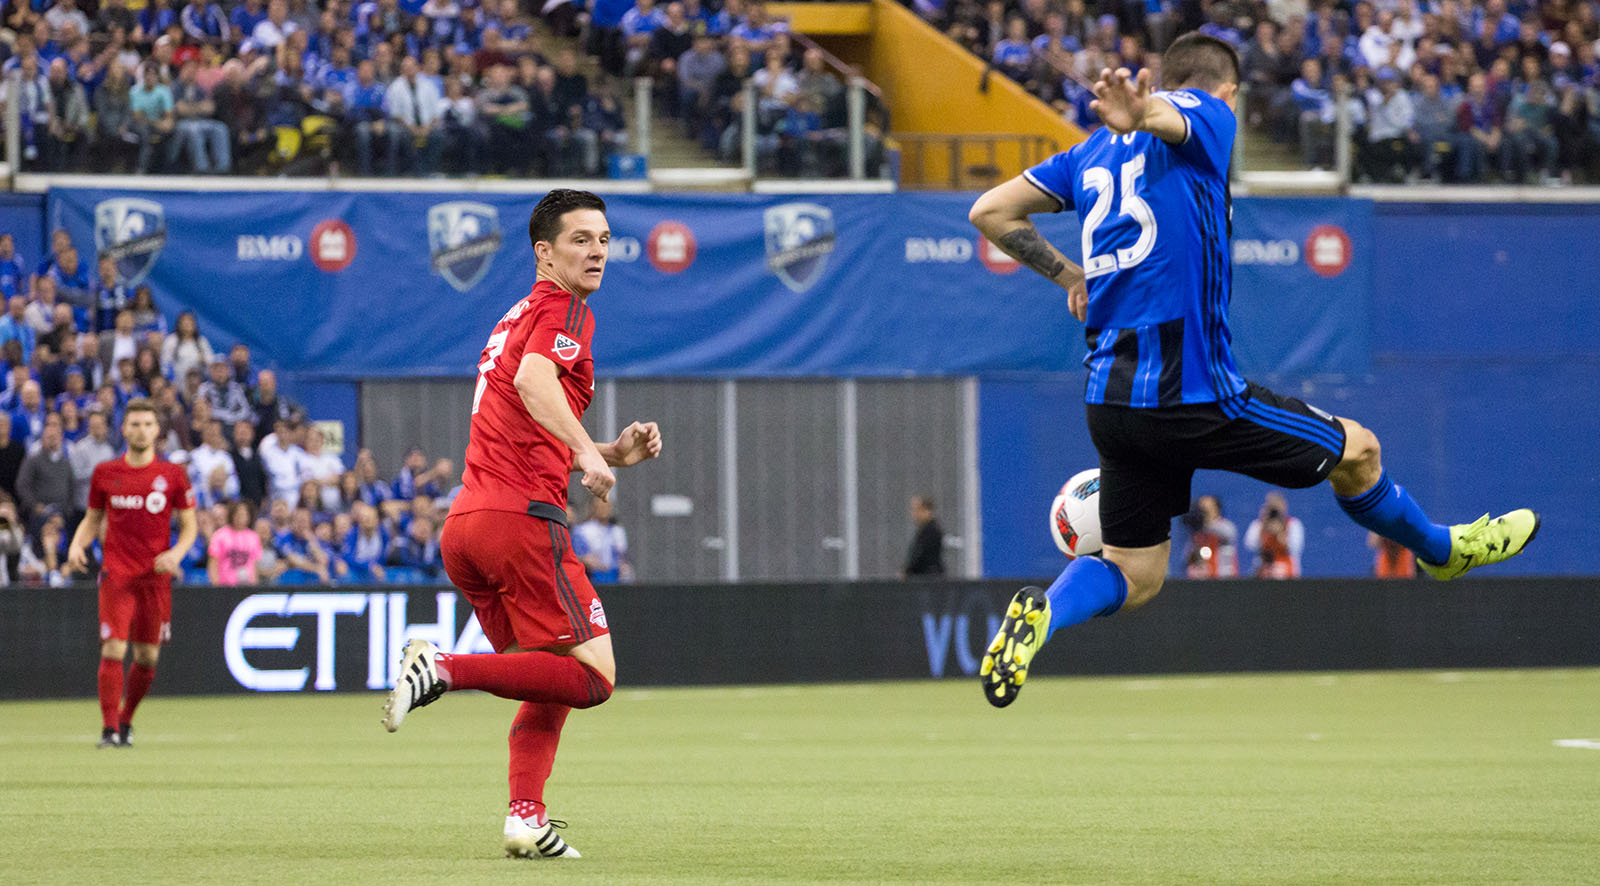 Will Johnson looking to keep tight space on the opposition during a MLS Cup Playoff Game in Montreal in 2016. Image by Dennis Marciniak of denMAR Media.